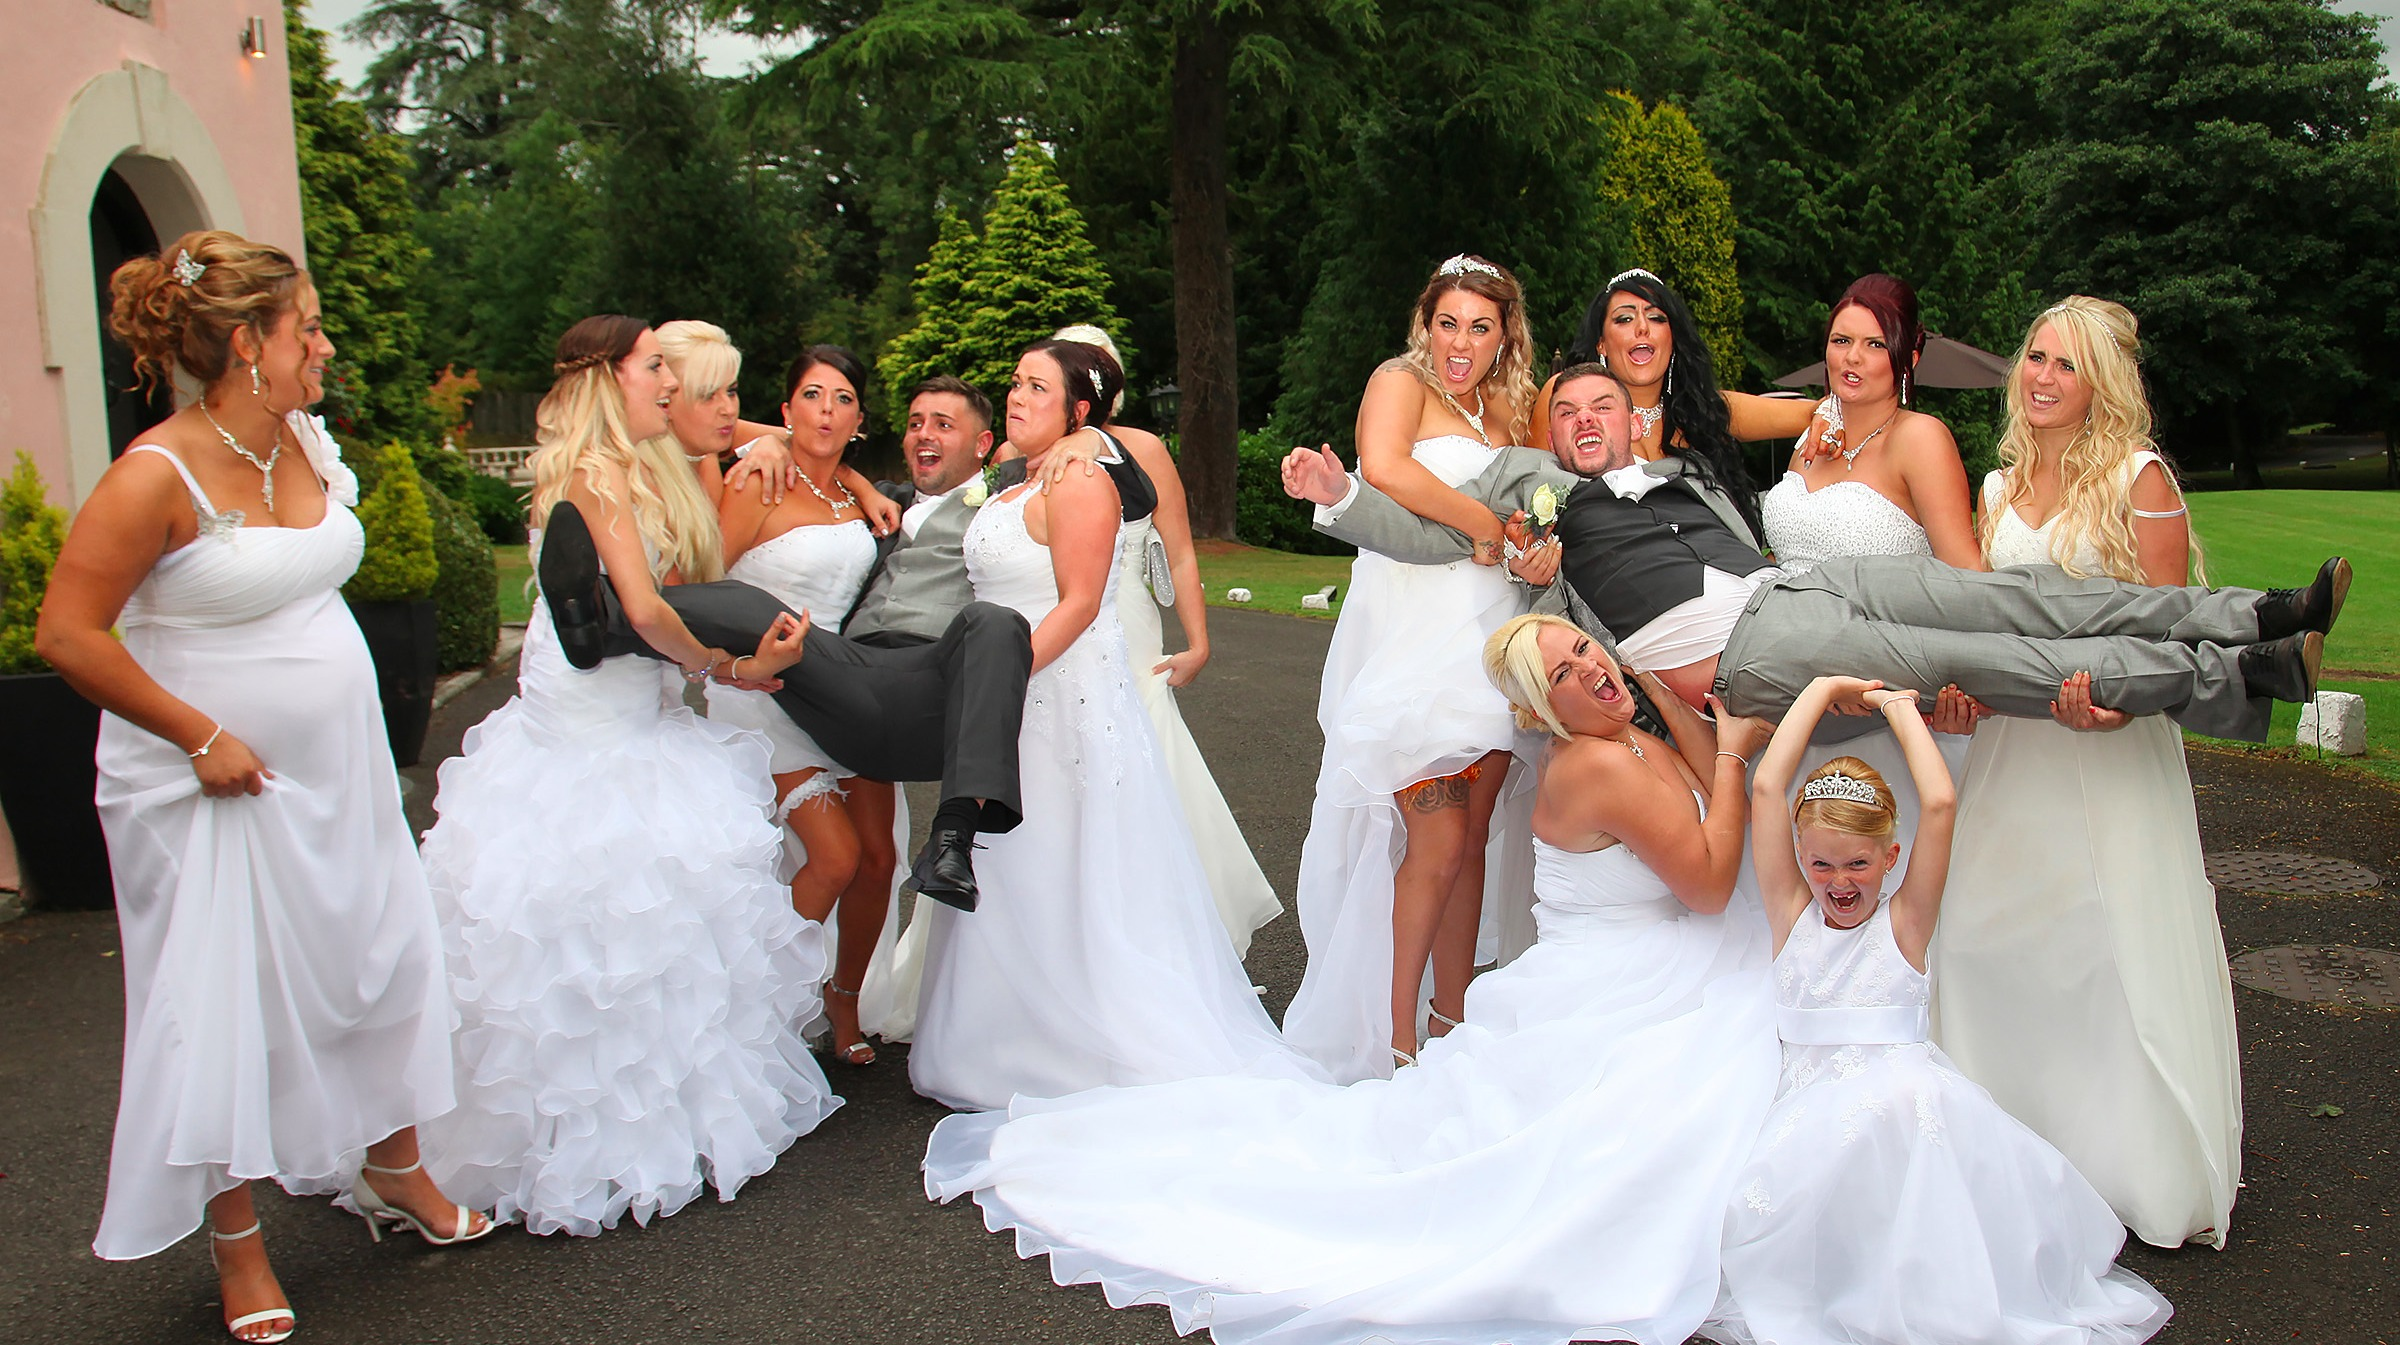 Two grooms ten brides and a wedding to remember